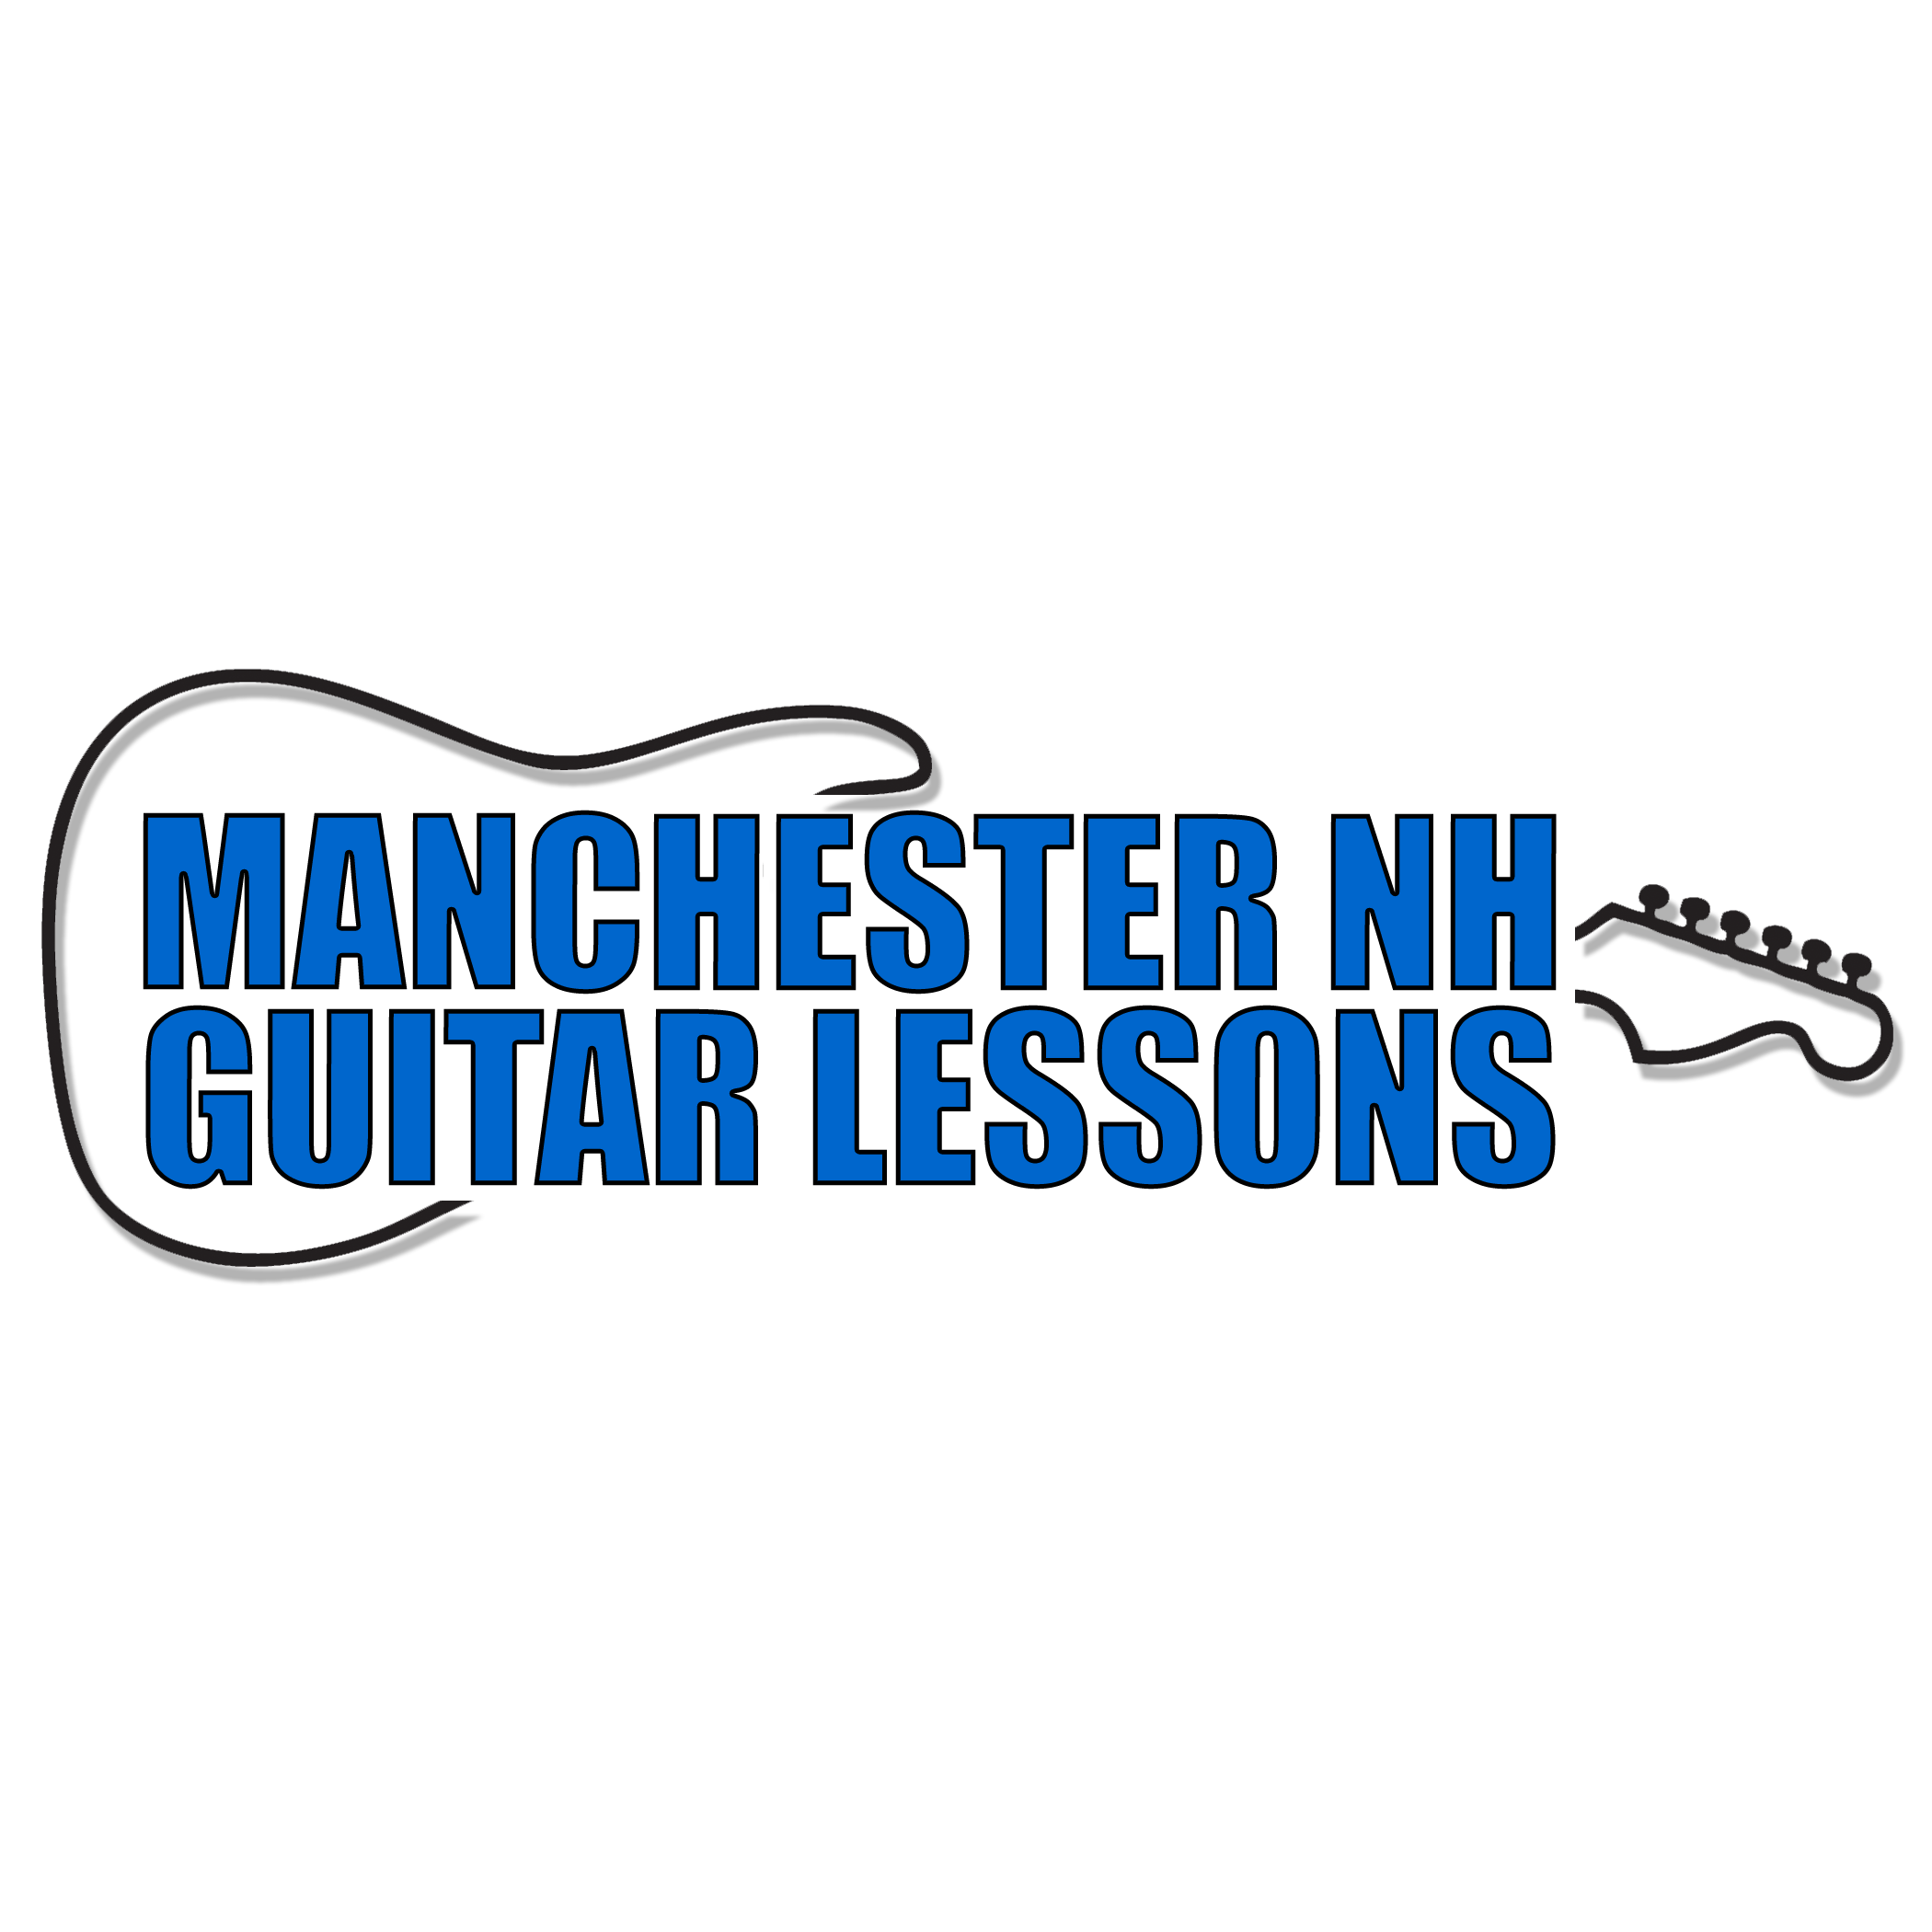 Manchester NH Guitar Lessons